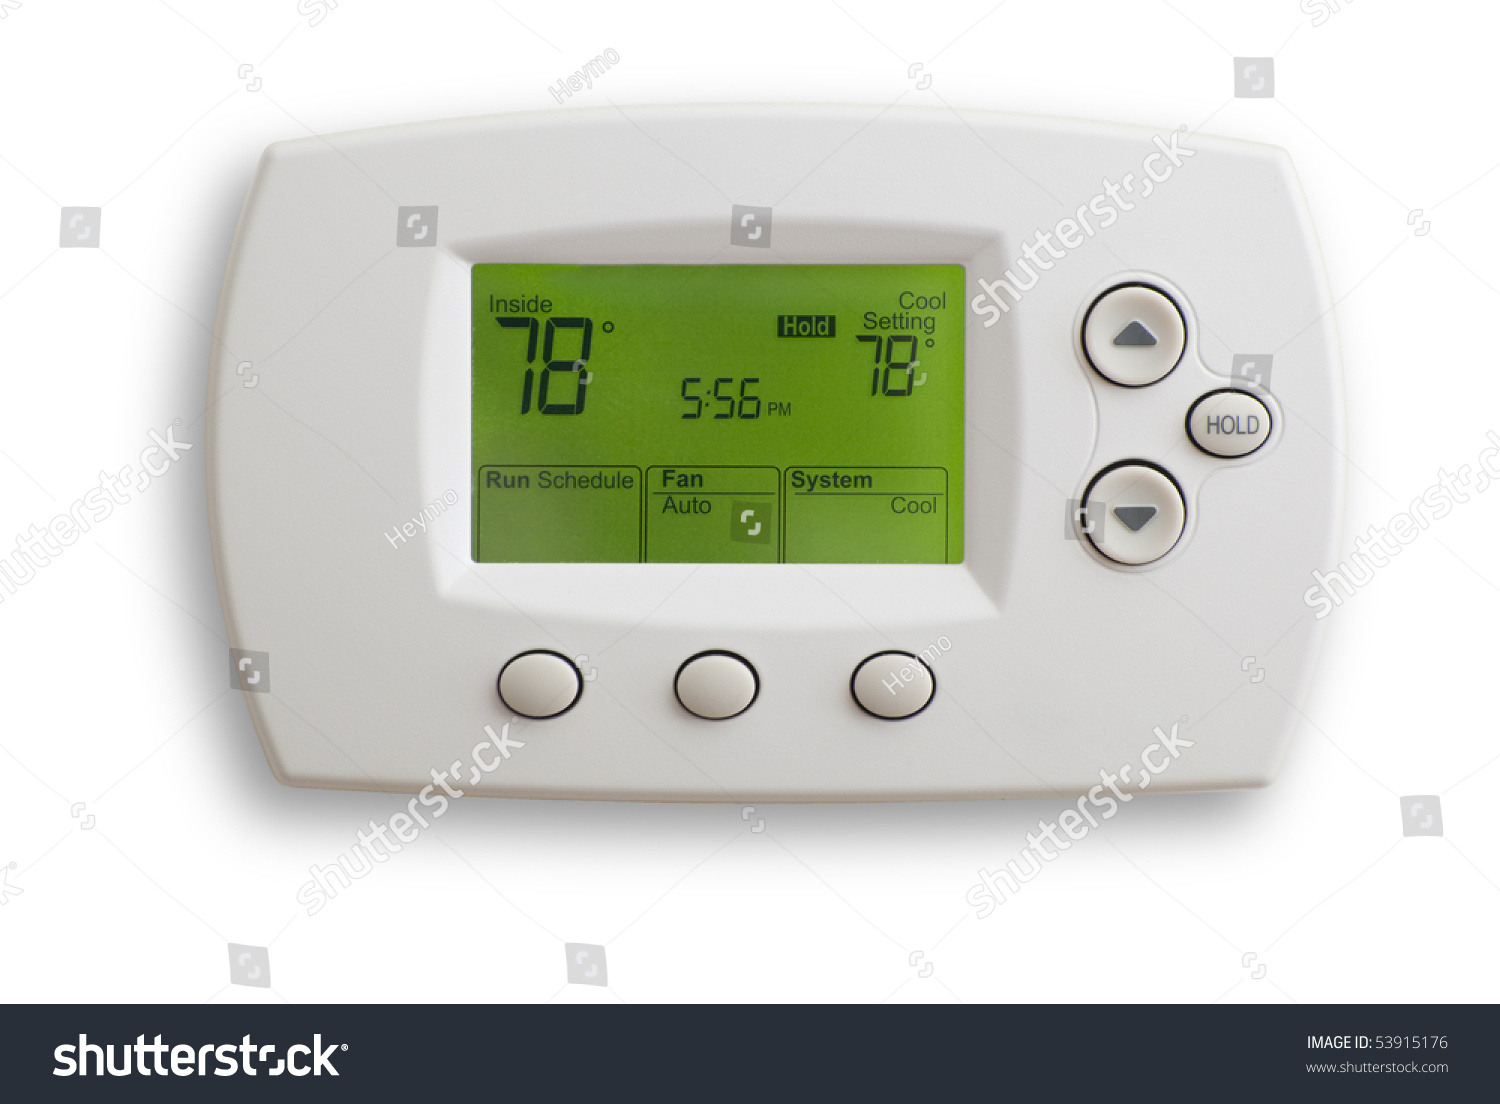 Digital Thermostat Set 78 Degrees Fahrenheit Stock Photo Edit Now To Saved With Clipping Path Isolated On White